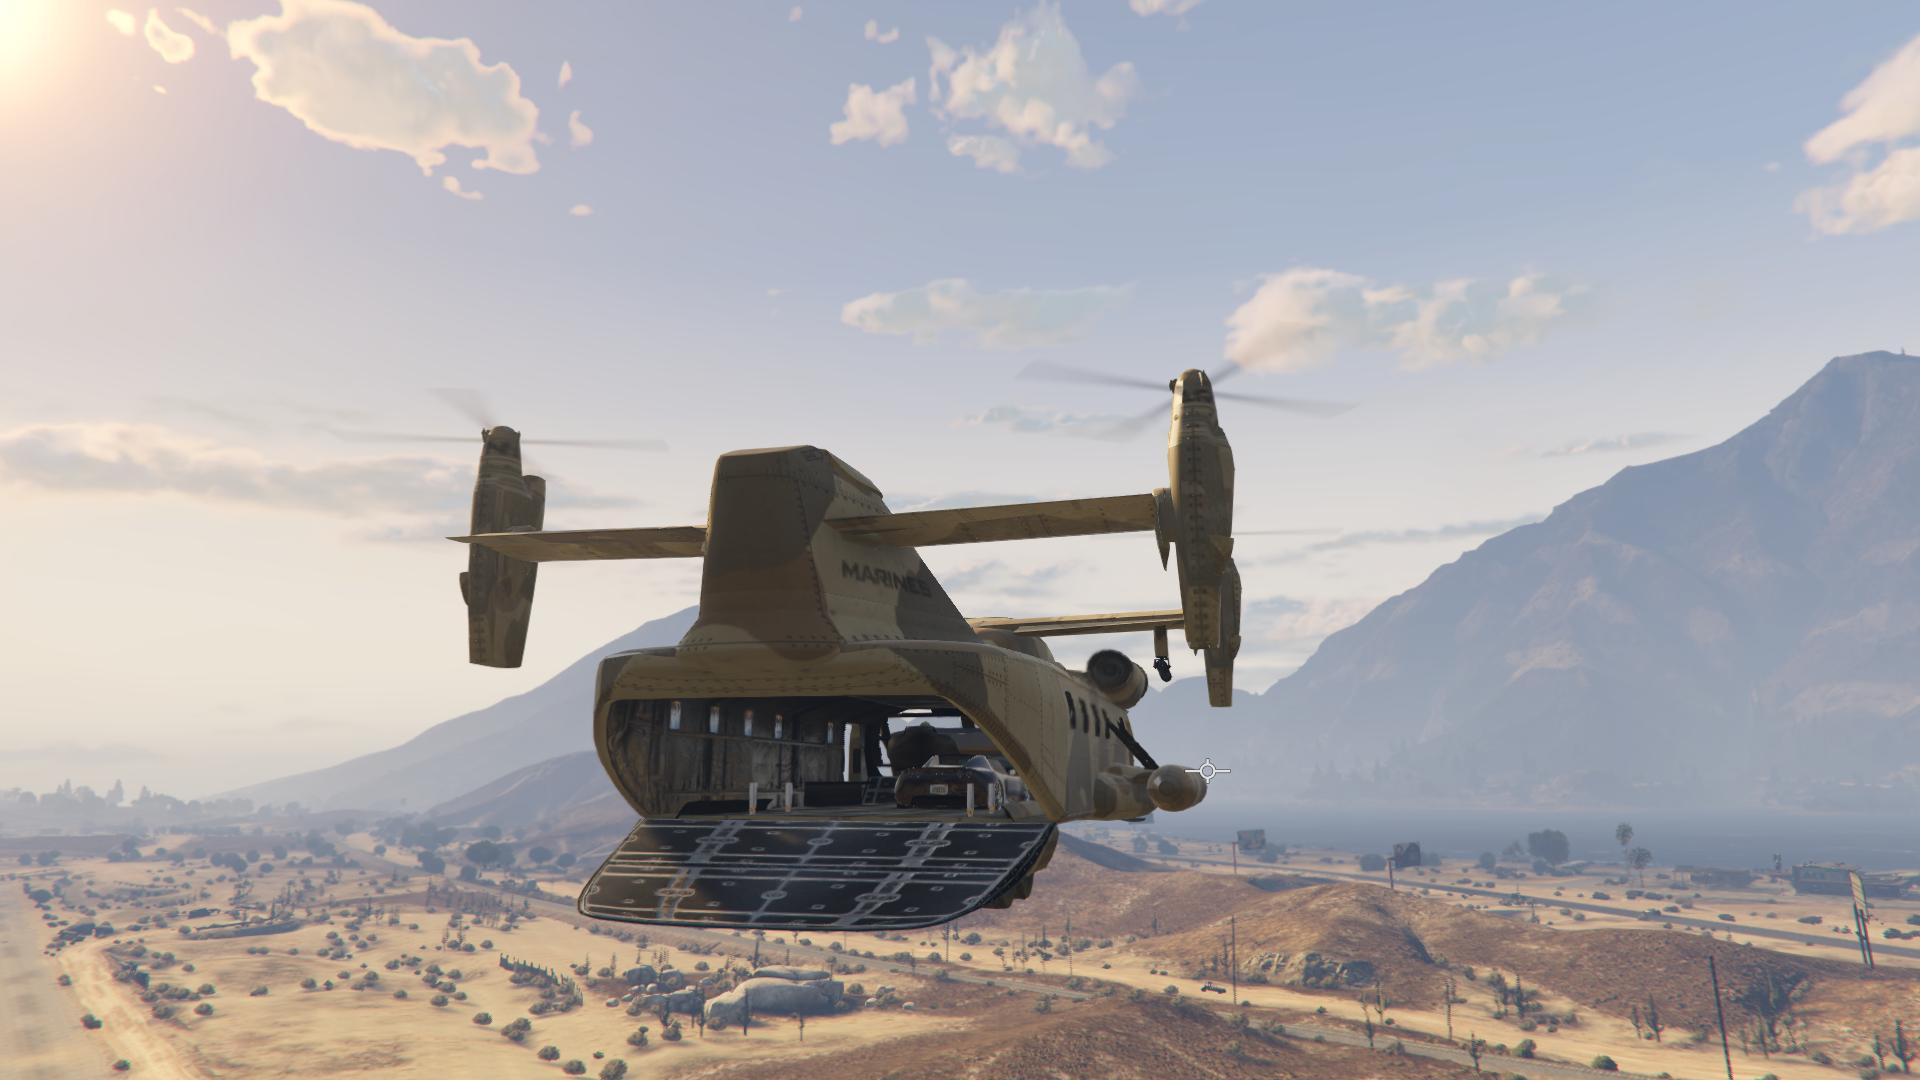 New Update Gta 5 Helicopters